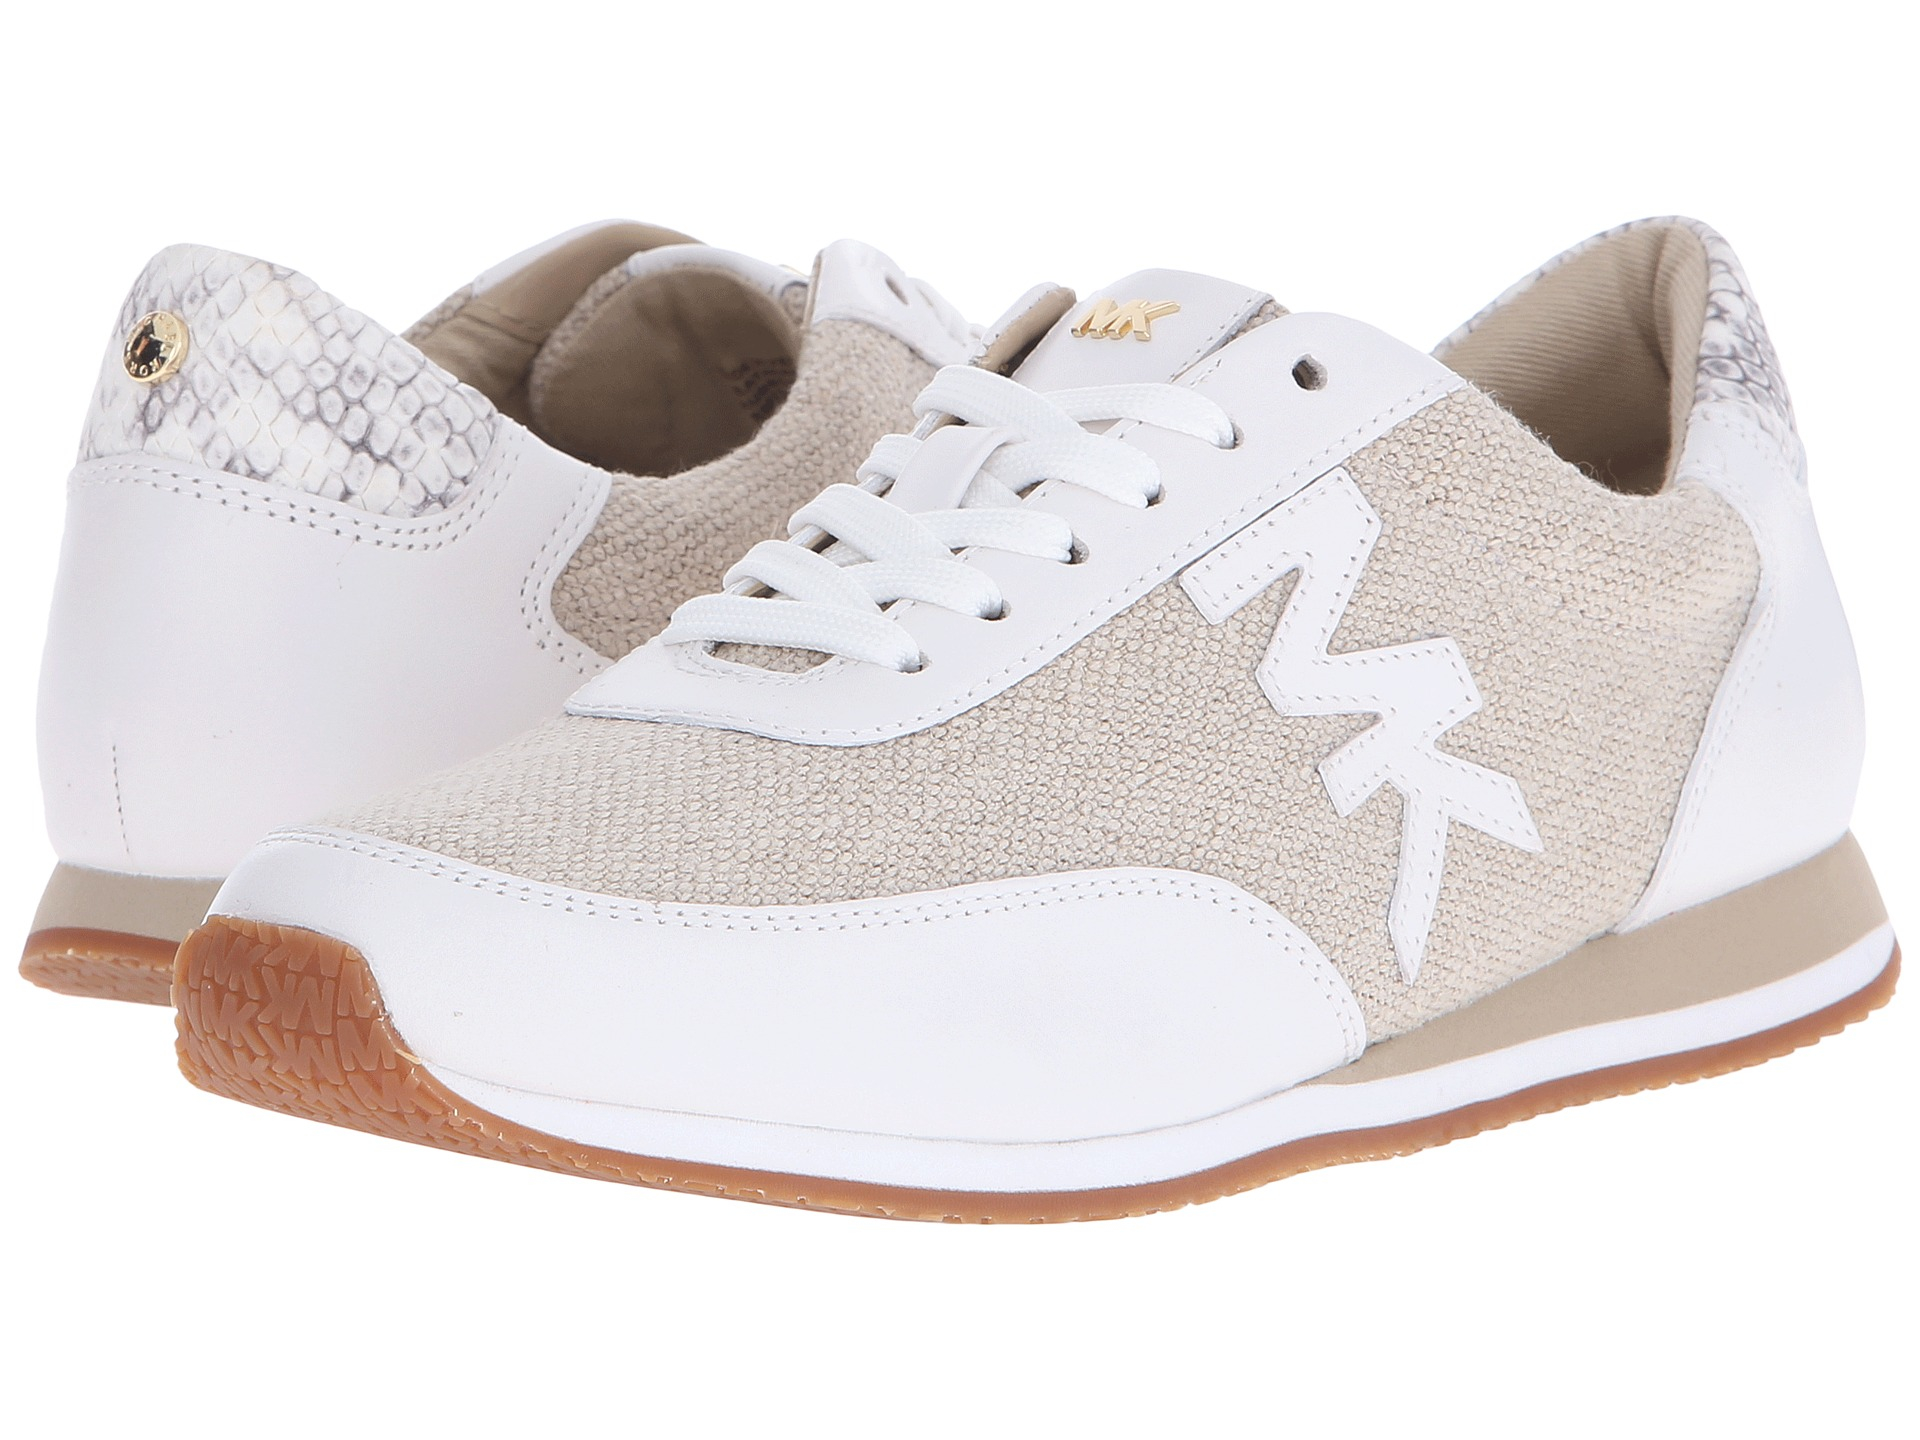 37d09e162848 Lyst - MICHAEL Michael Kors Stanton Trainer in Natural